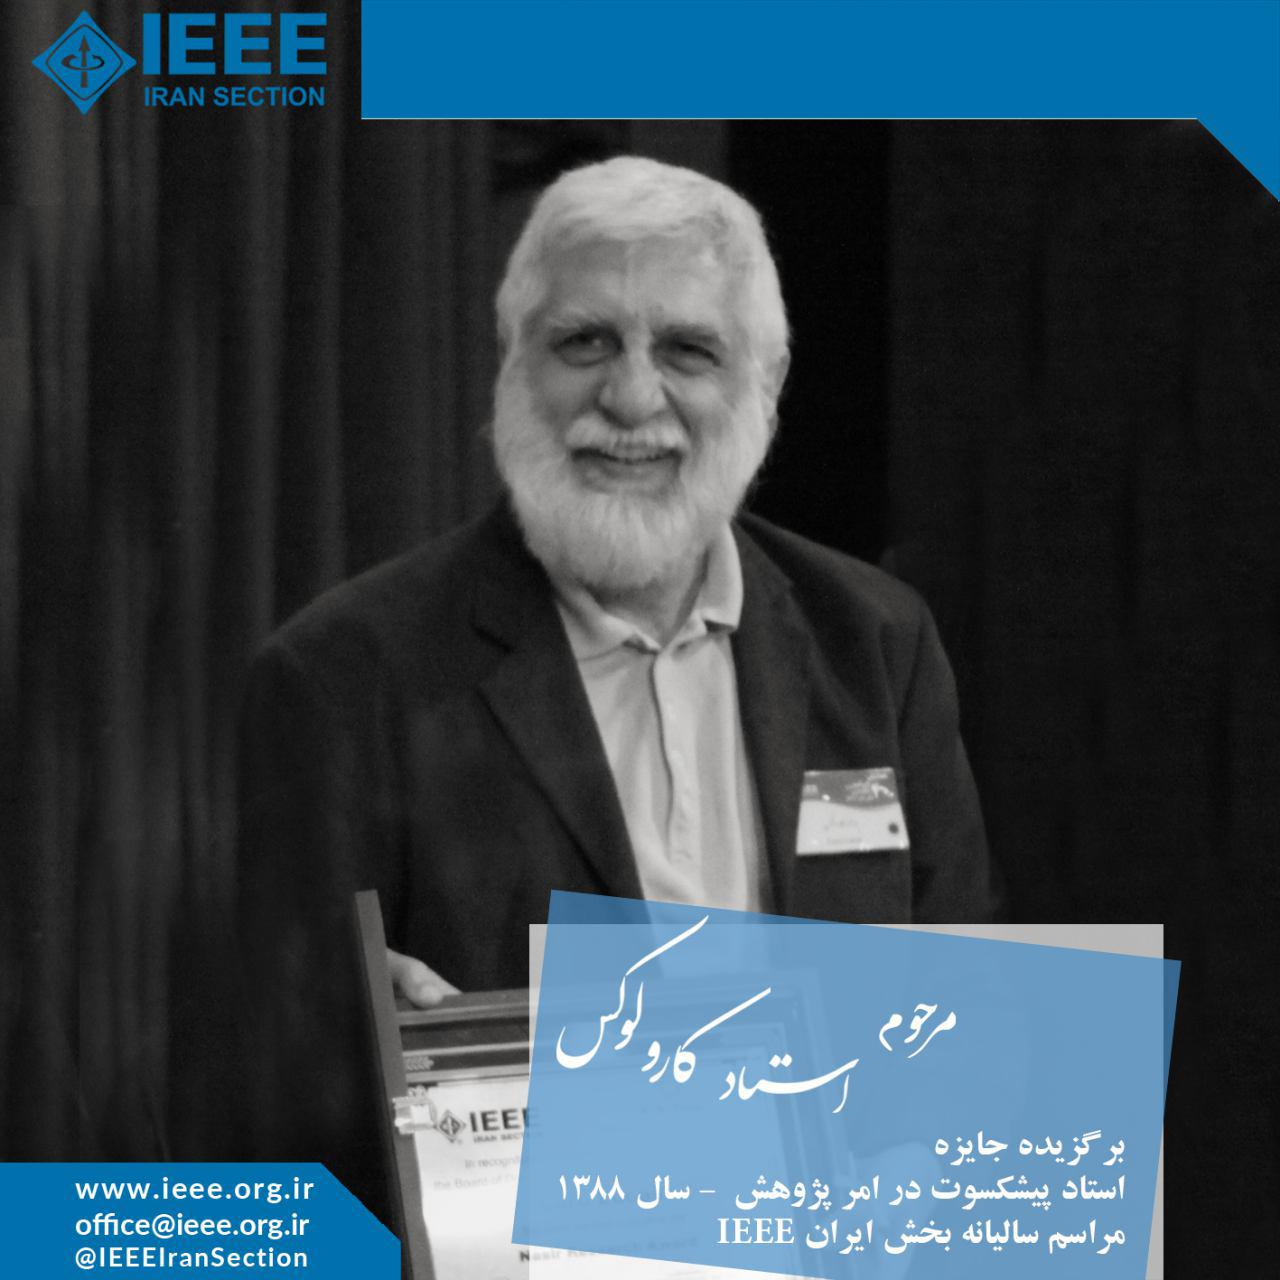 IEEE Iran Section